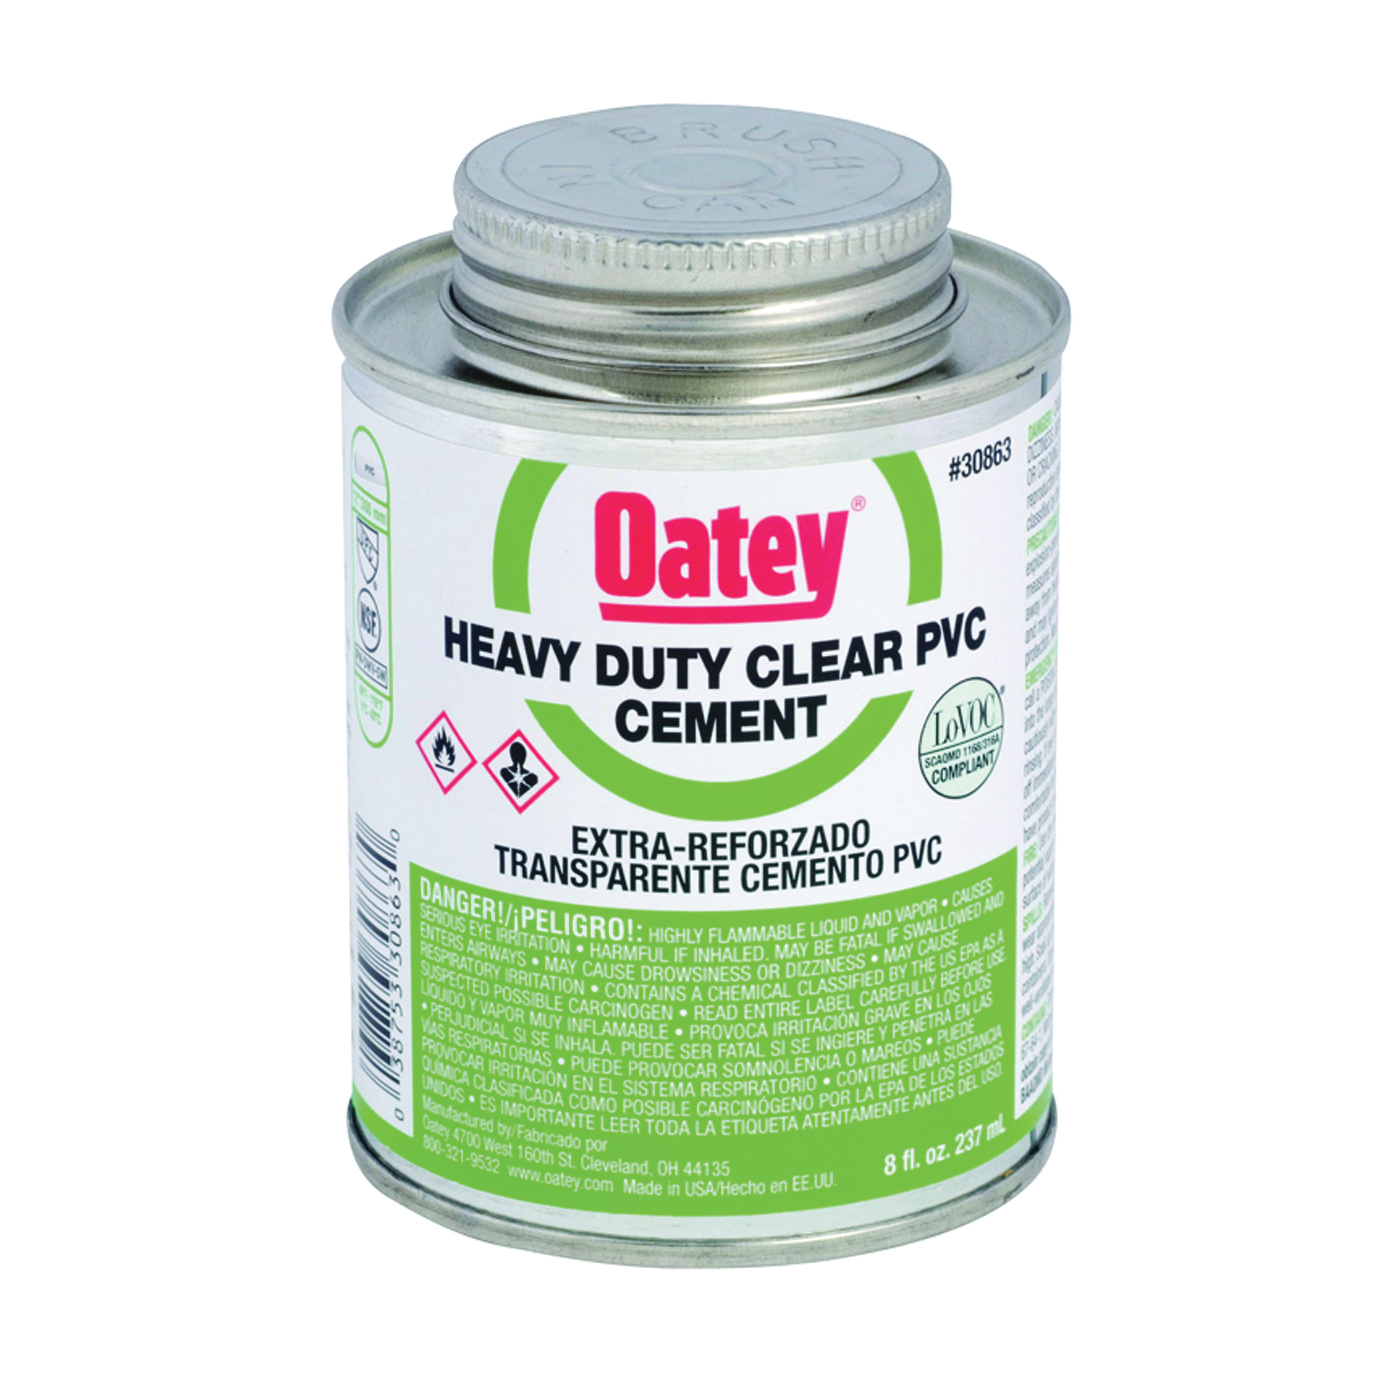 Picture of Oatey 30863 Solvent Cement, 8 oz, Can, Liquid, Clear